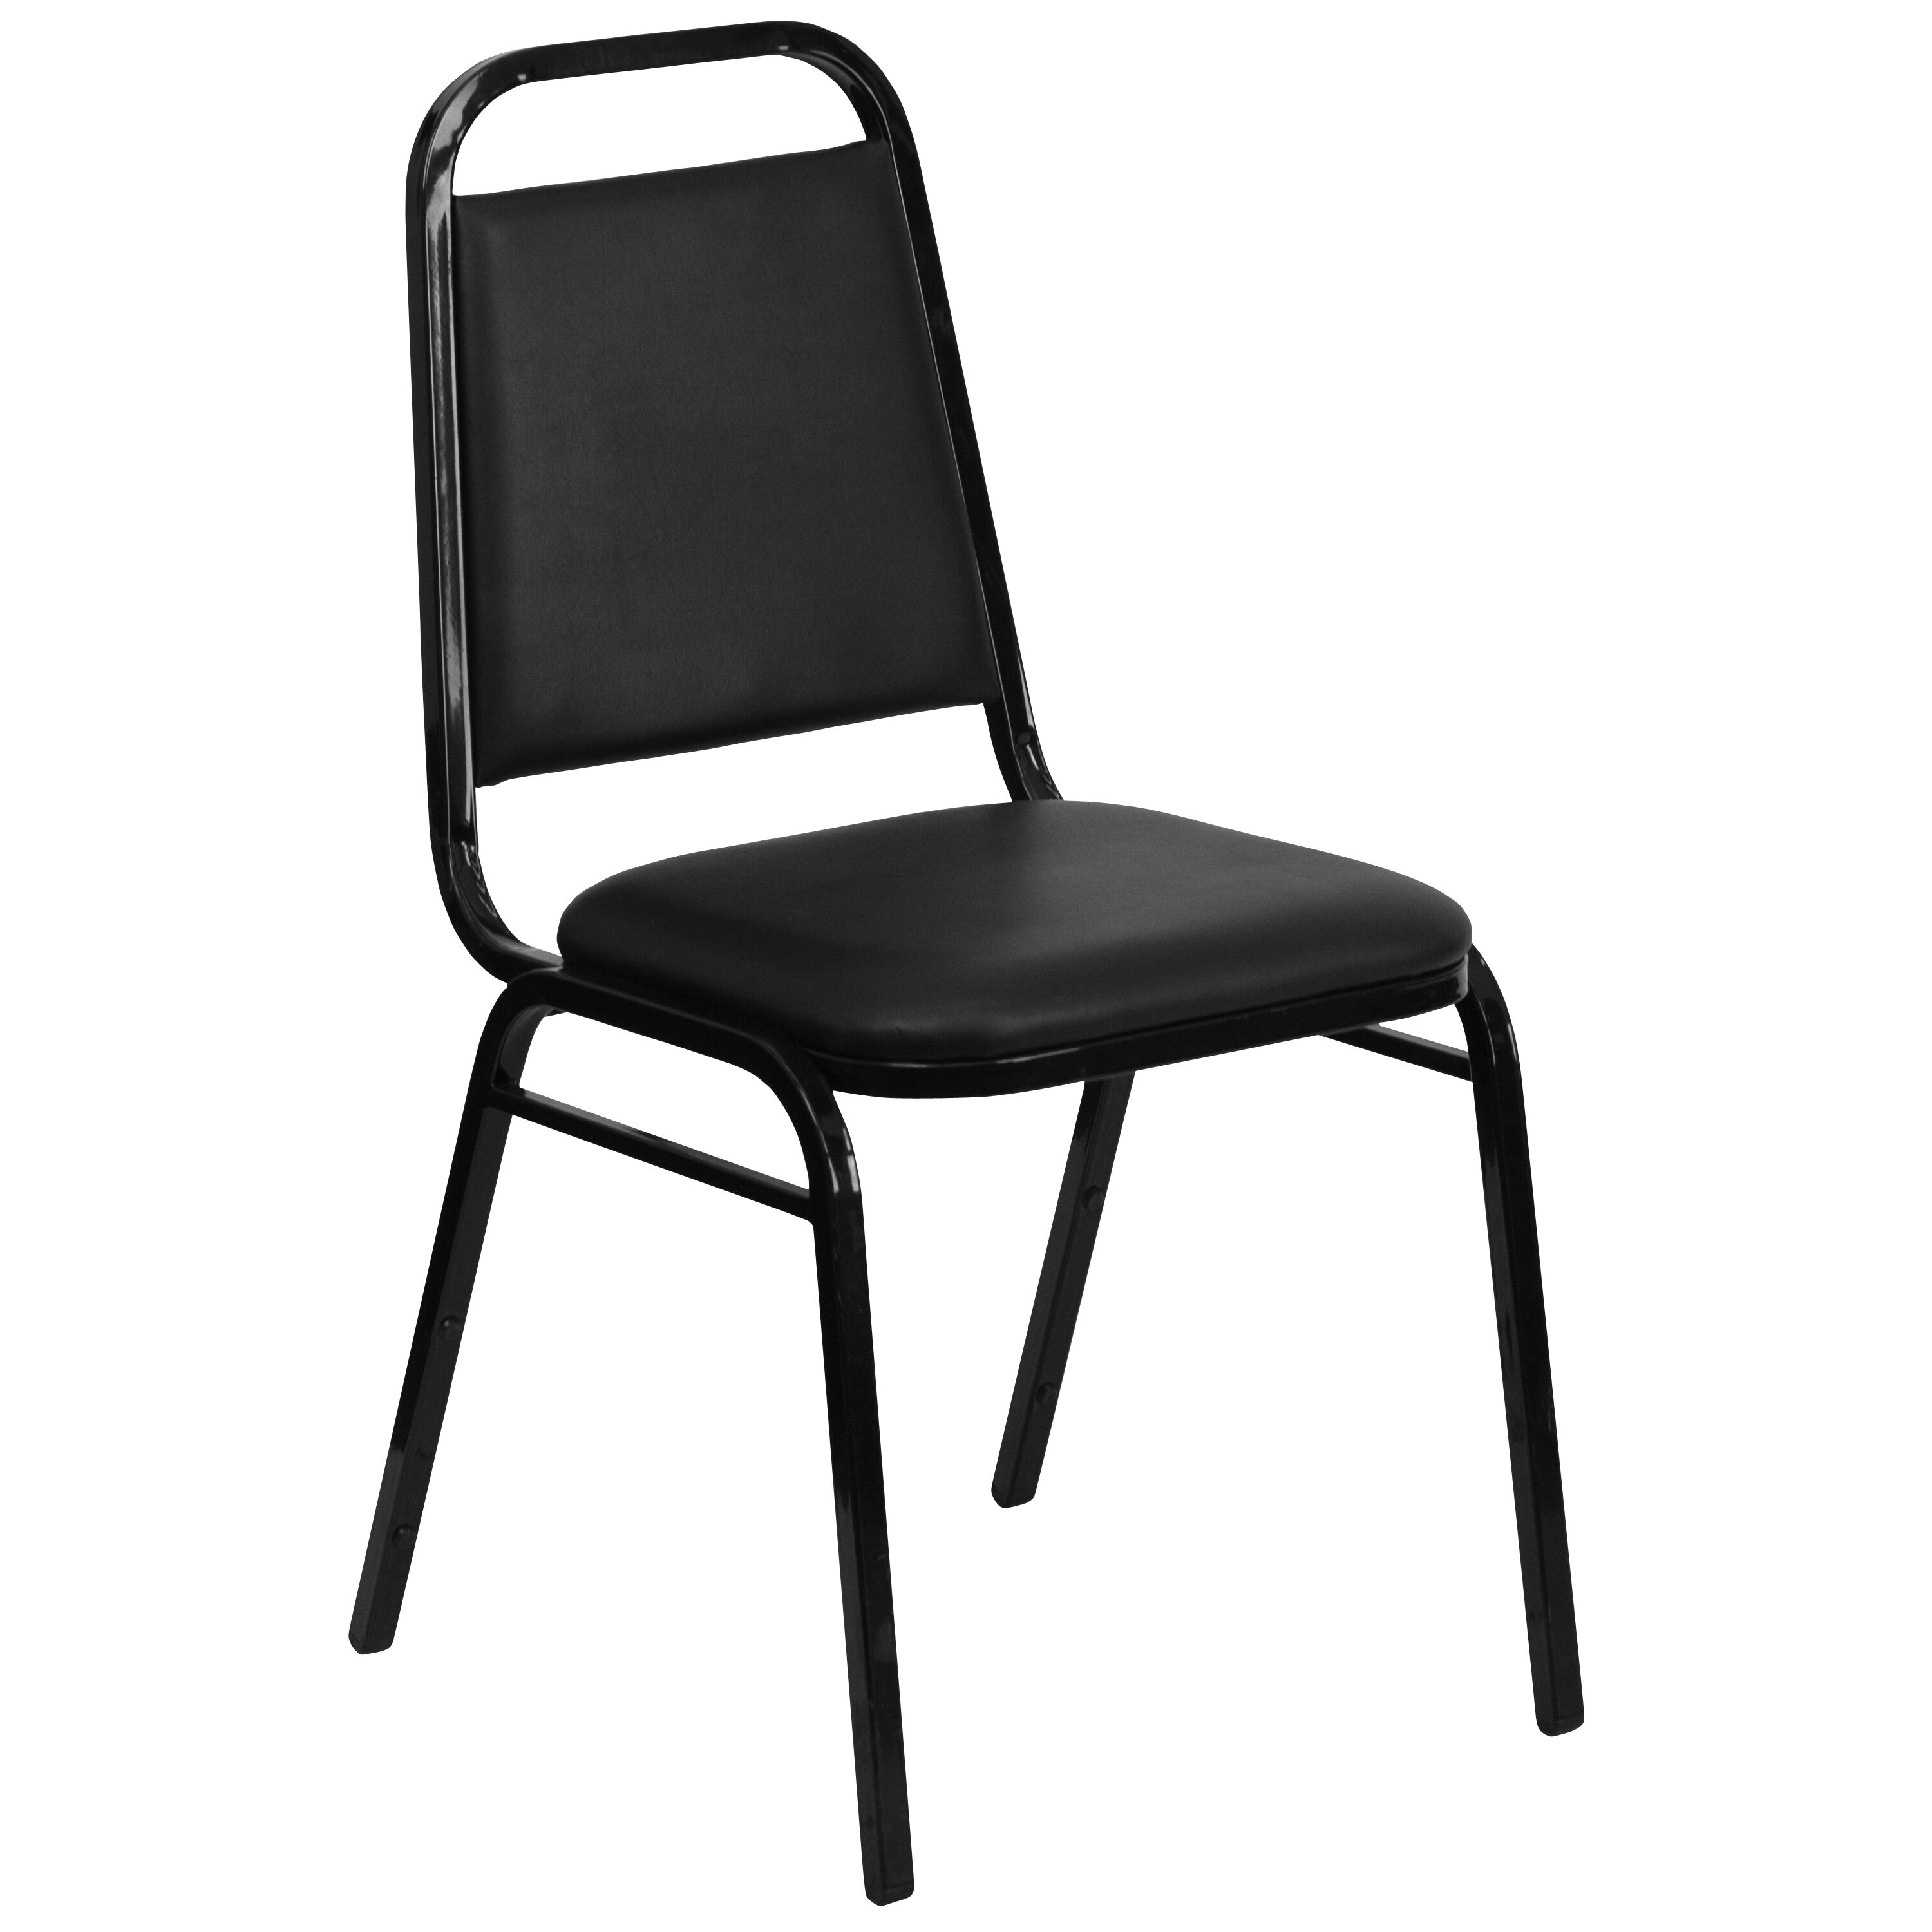 Attractive Flash Furniture HERCULES Series Trapezoidal Back Stacking Banquet Chair In  Black Vinyl   Black Frame FD BHF 2 GG | RestaurantFurniture4Less.com